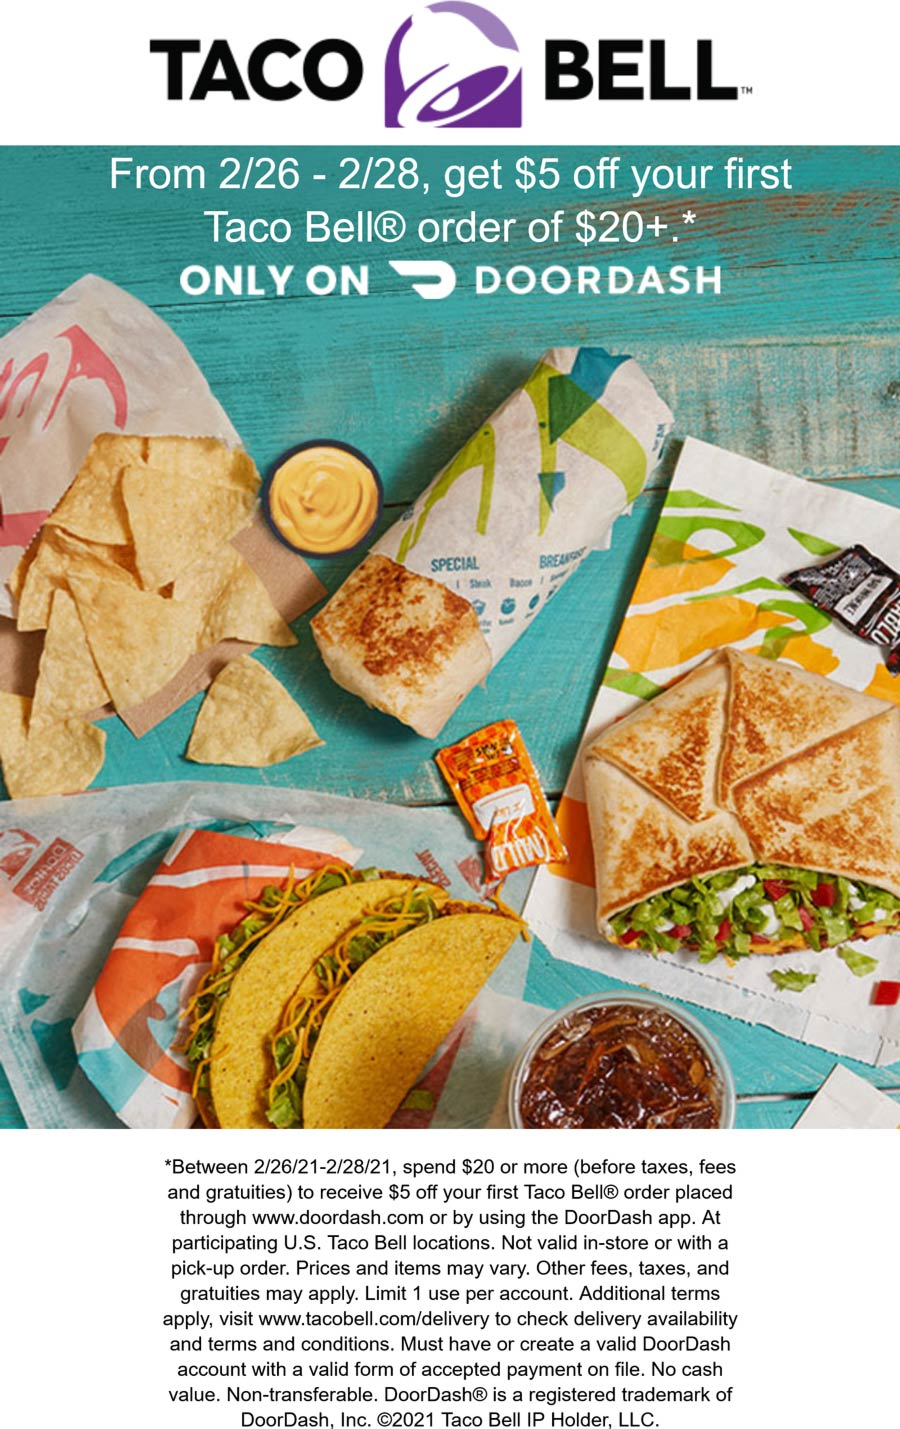 Taco Bell restaurants Coupon  $5 off $20 on first delivery from Taco Bell restaurants #tacobell